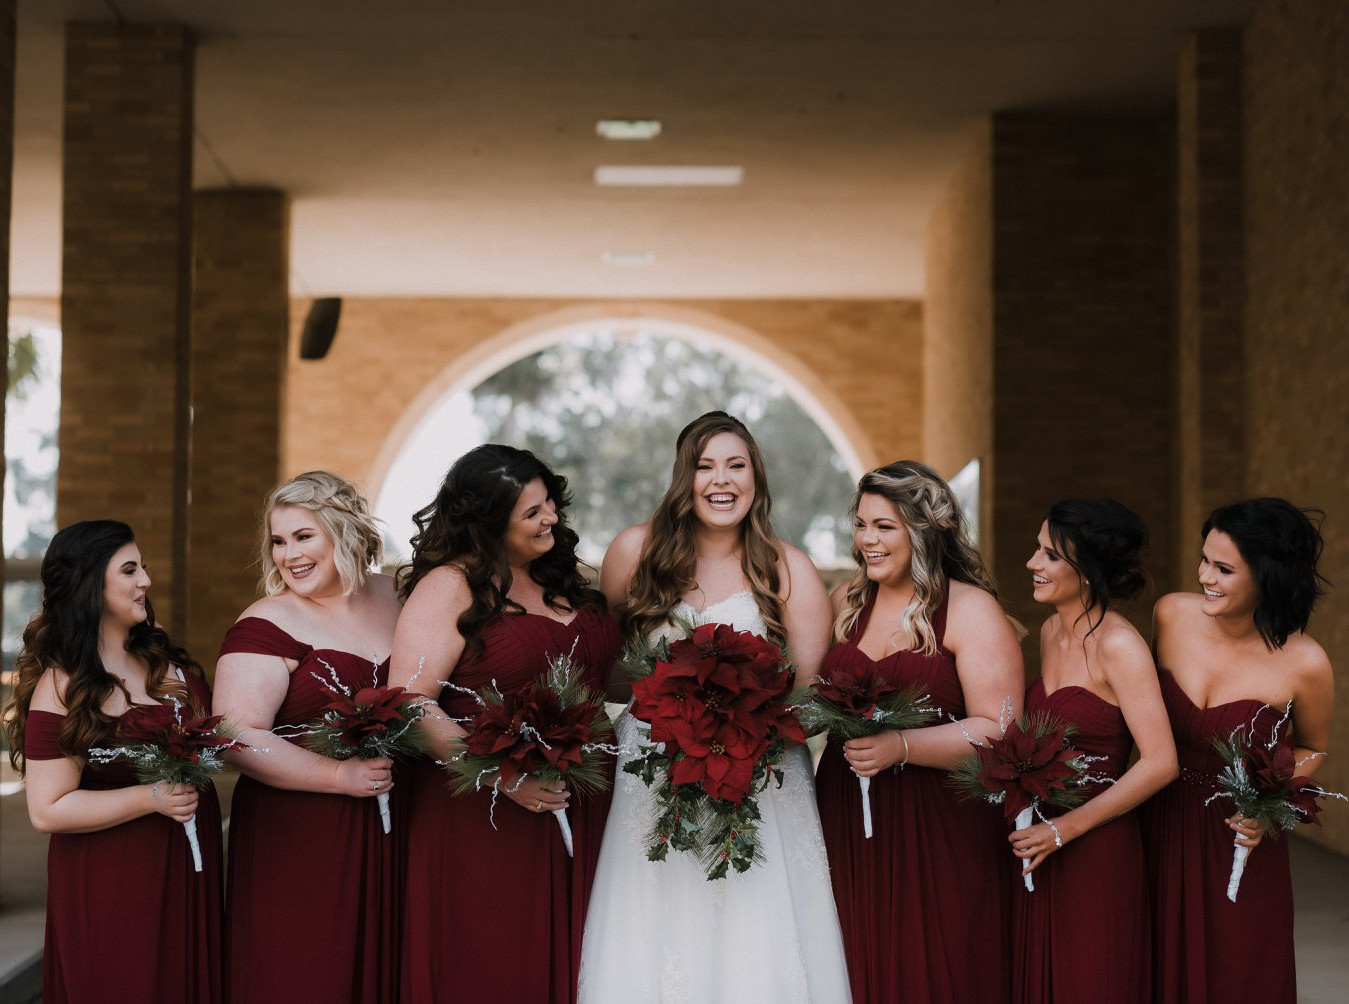 Brooklyn Shay & Bridesmaids